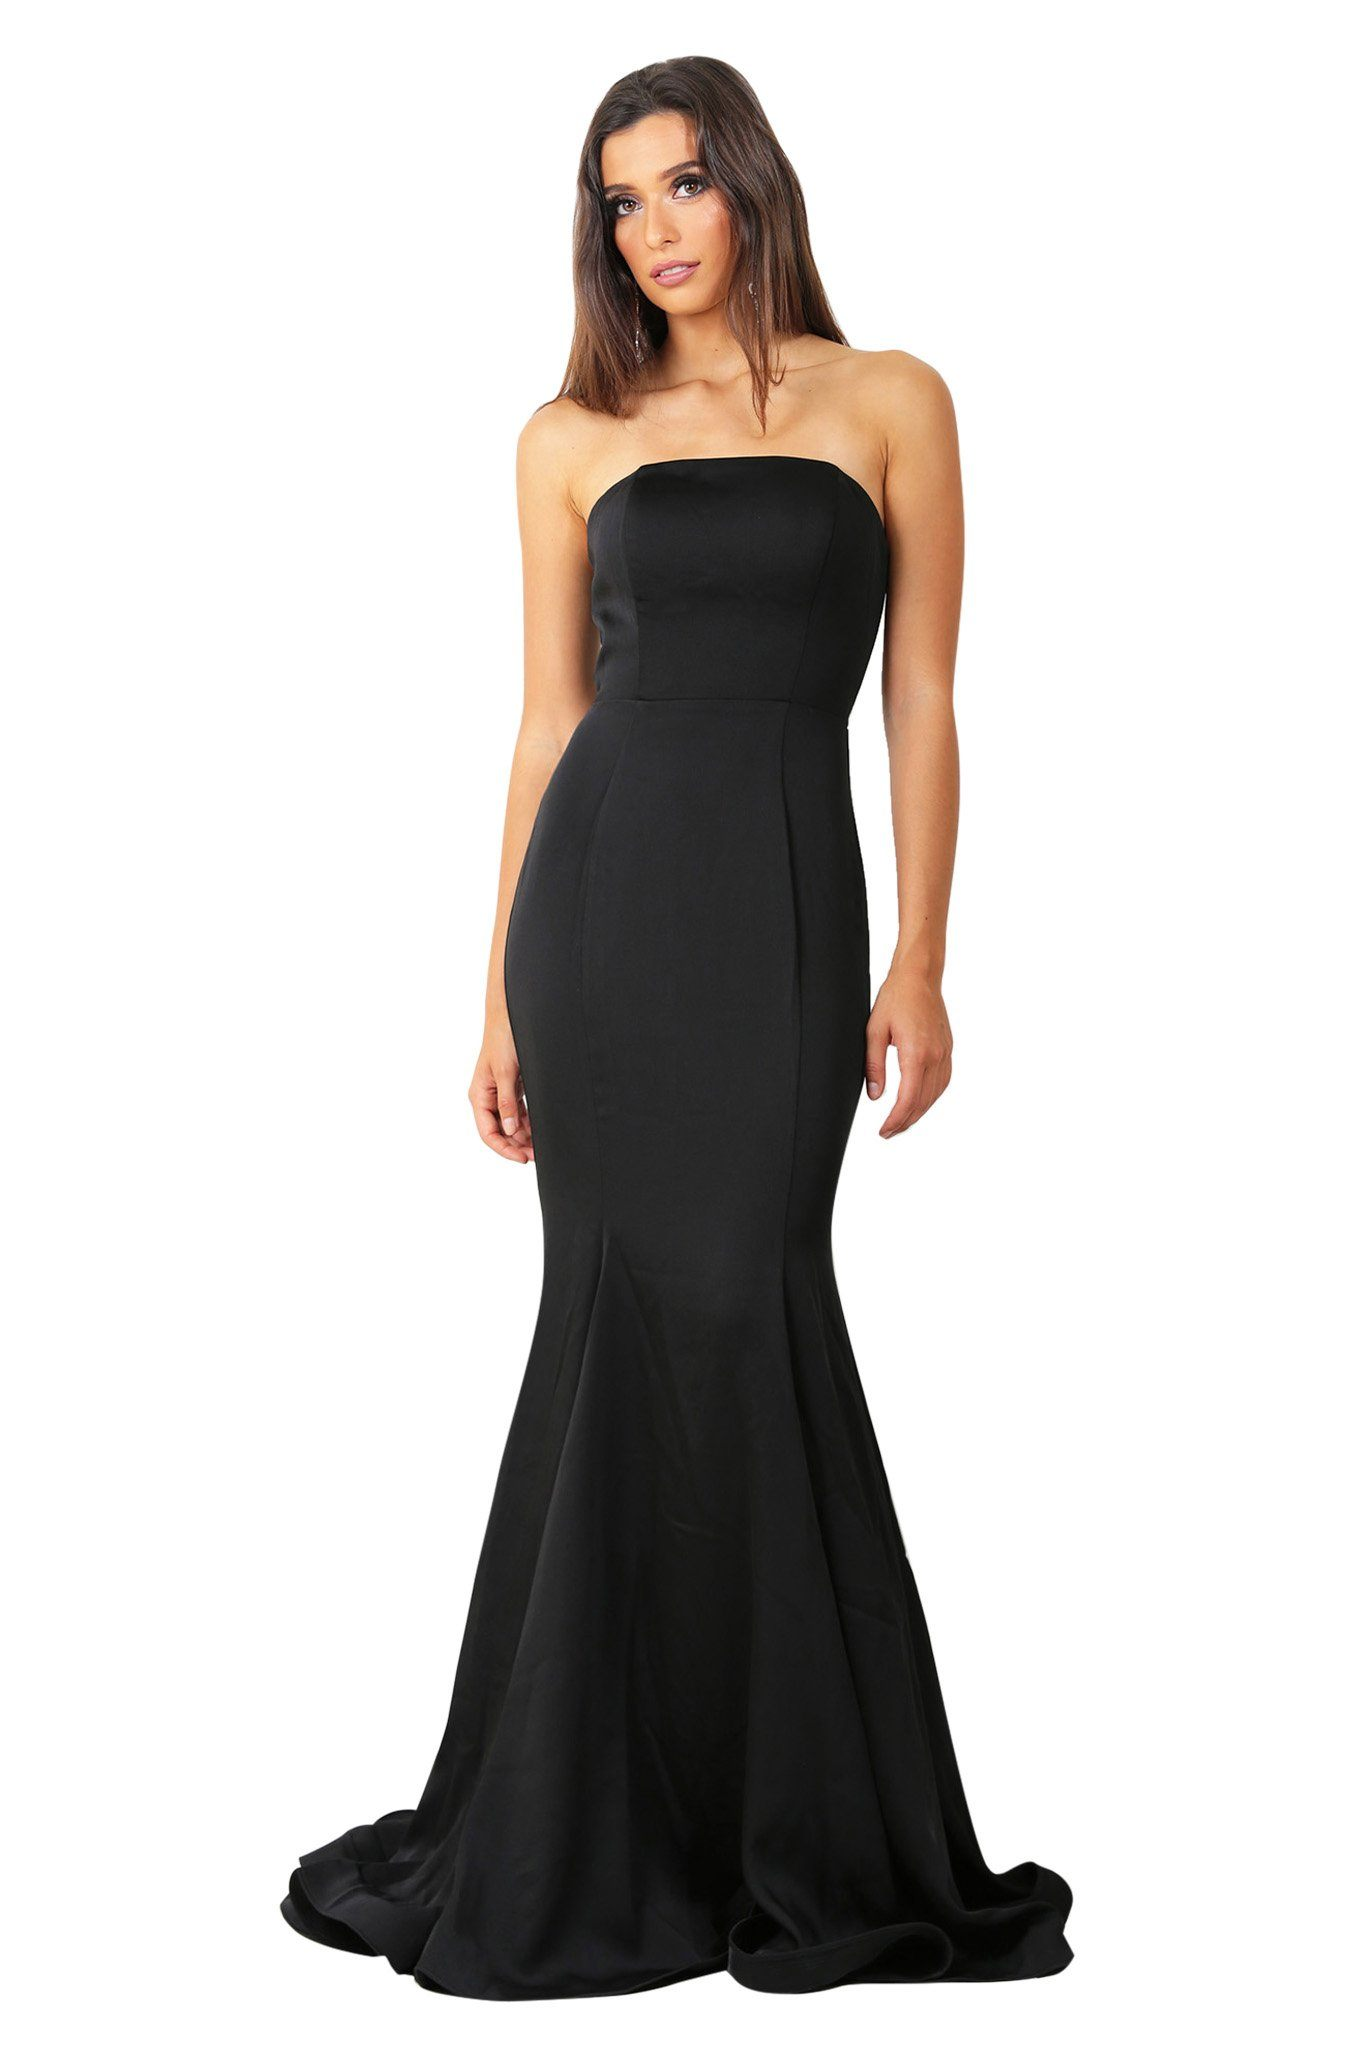 ddfb582373534 Black strapless straight neckline boned bodice fitted evening gown with  floor sweeping train